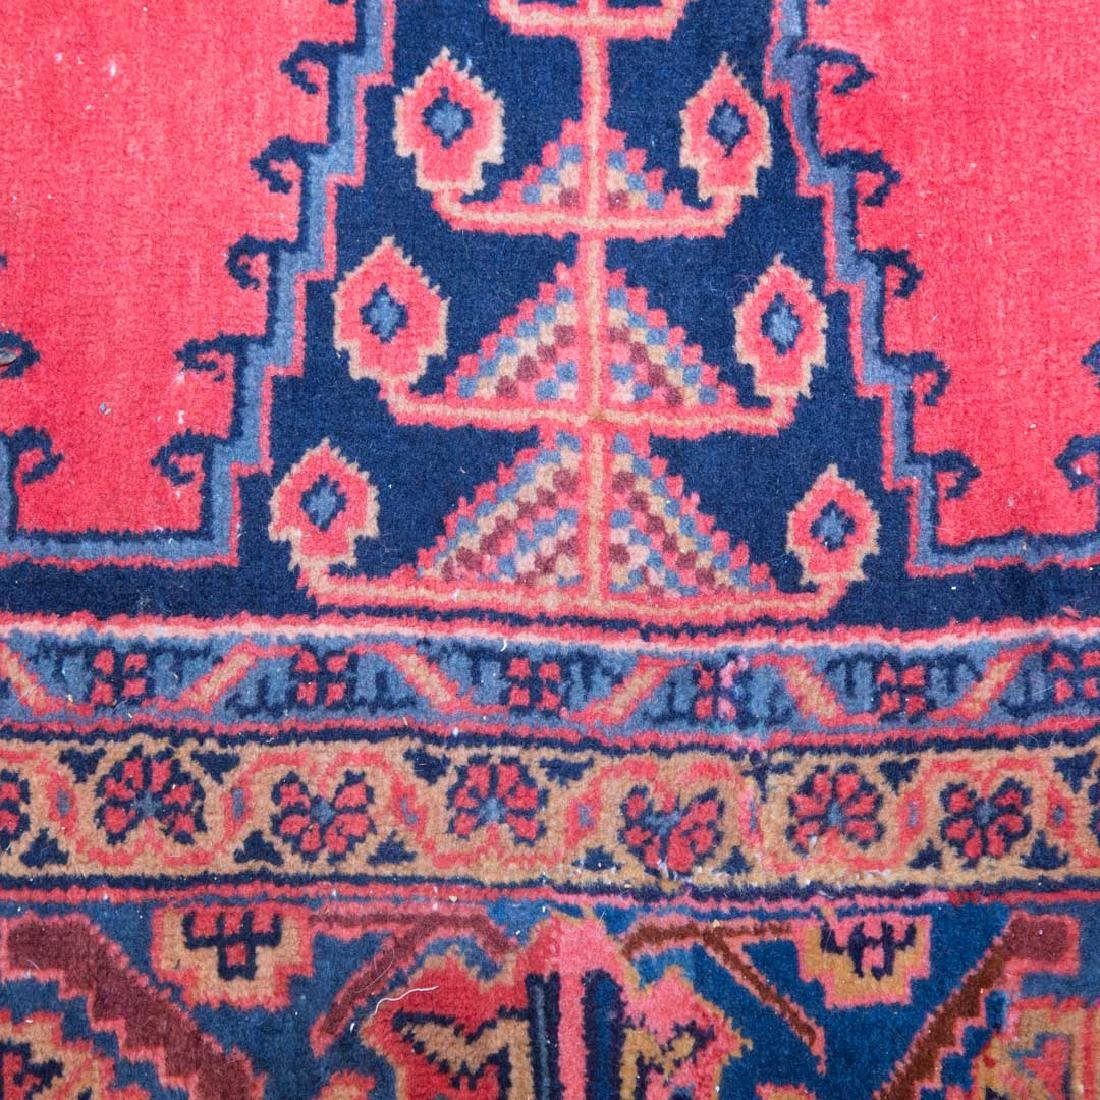 Persian Mahal carpet, approx. 8.7 x 11.4 - 4